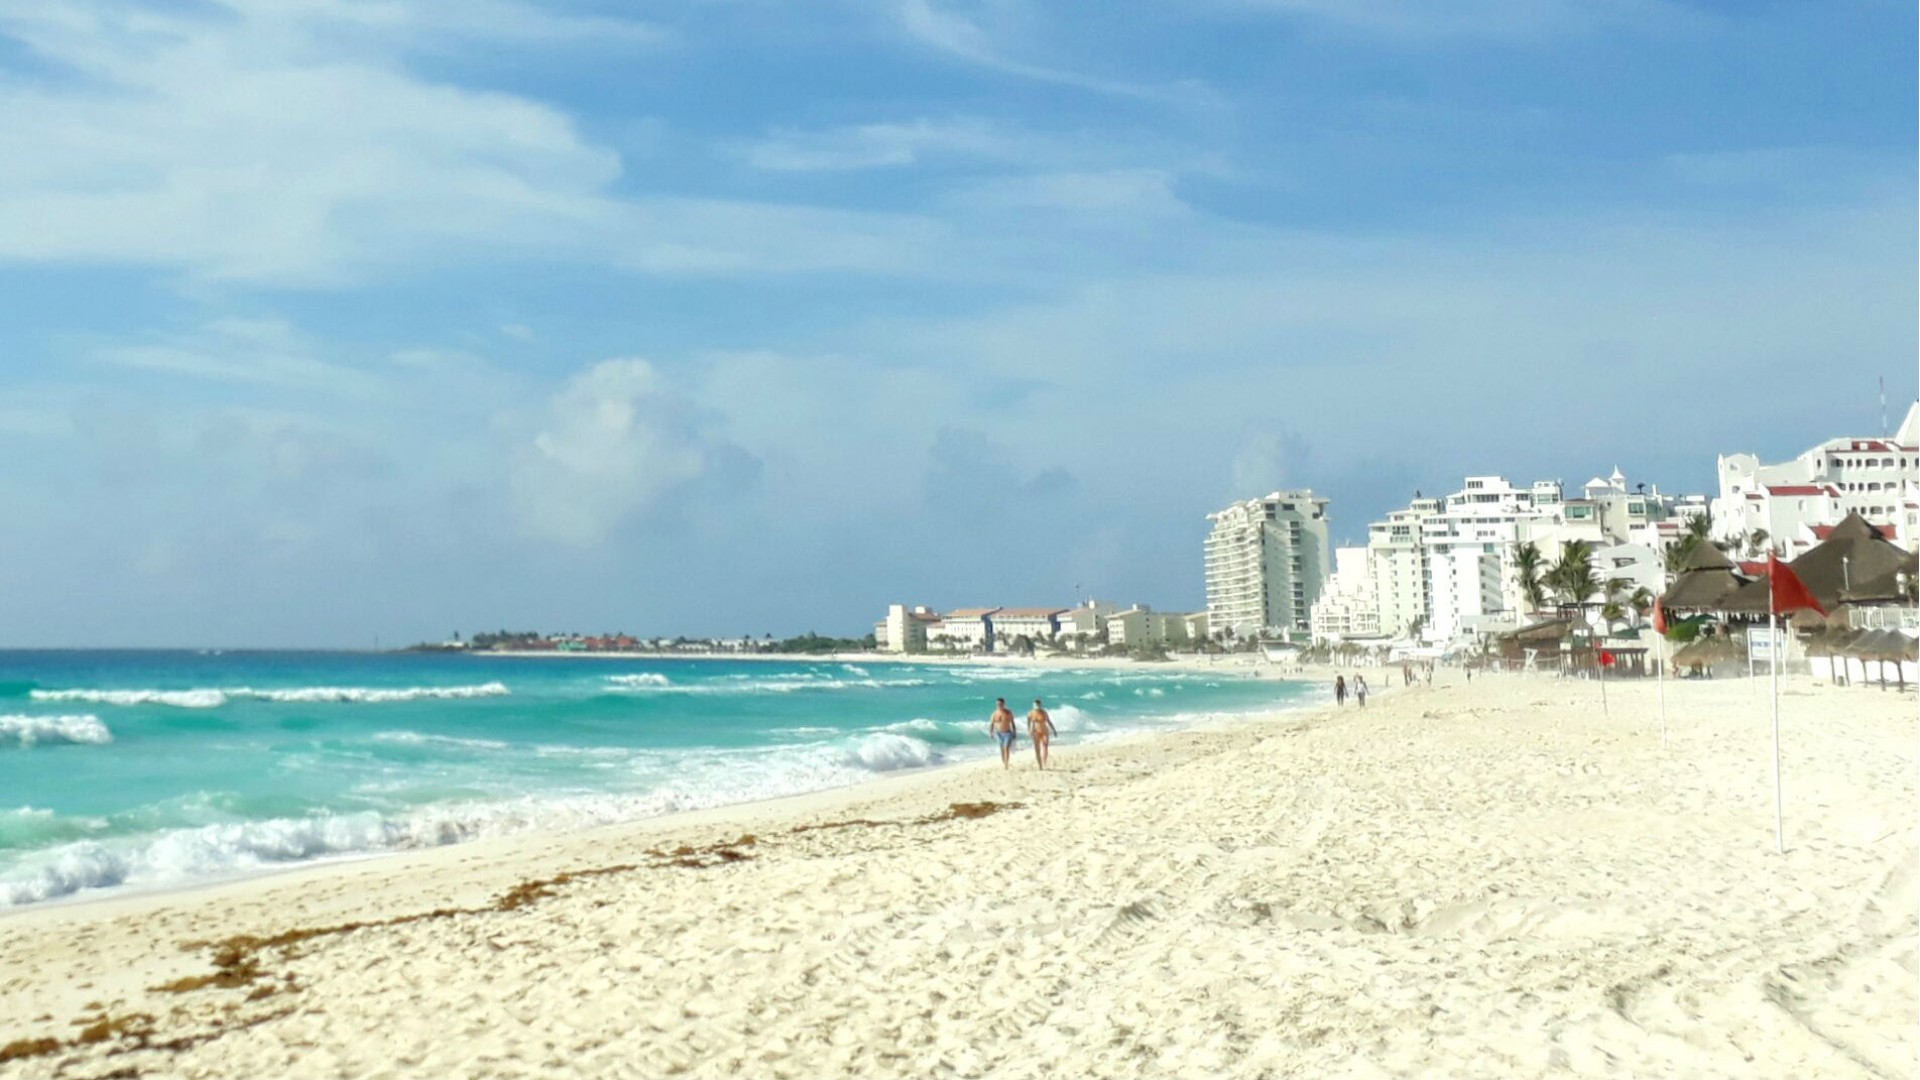 Cancun, Mexico